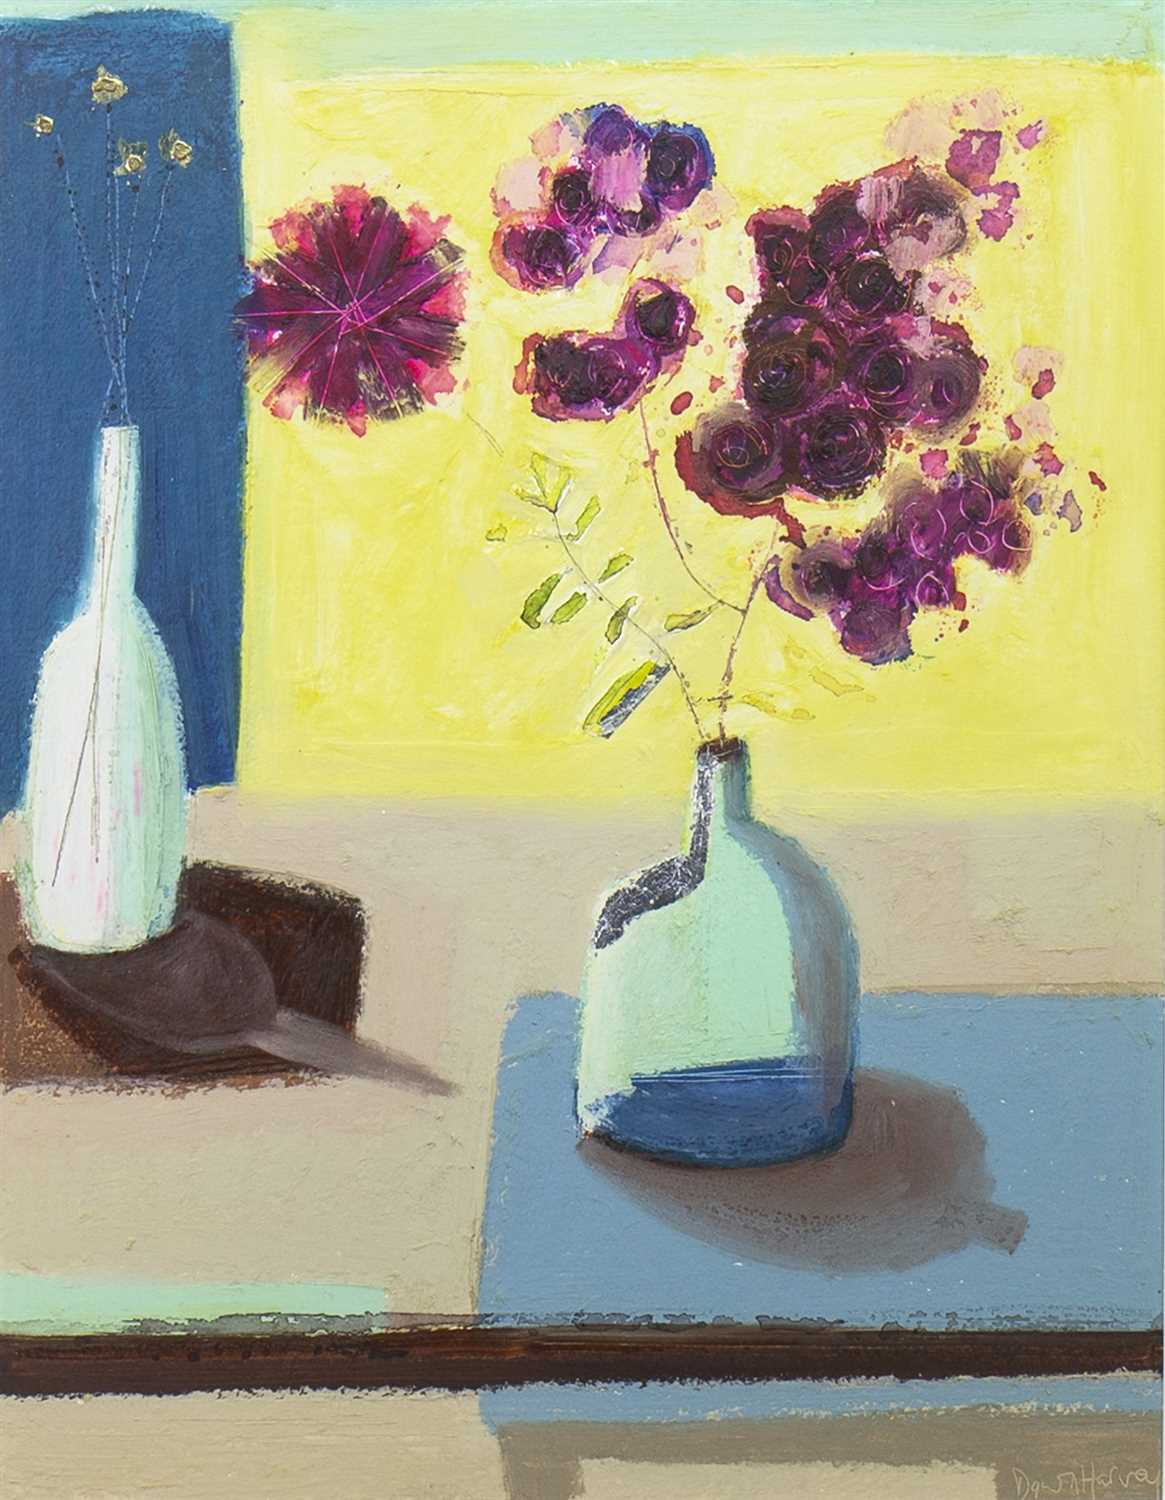 Lot 535-FLORAL STILL LIFE, A MIXED MEDIA BY DAWN HARVEY